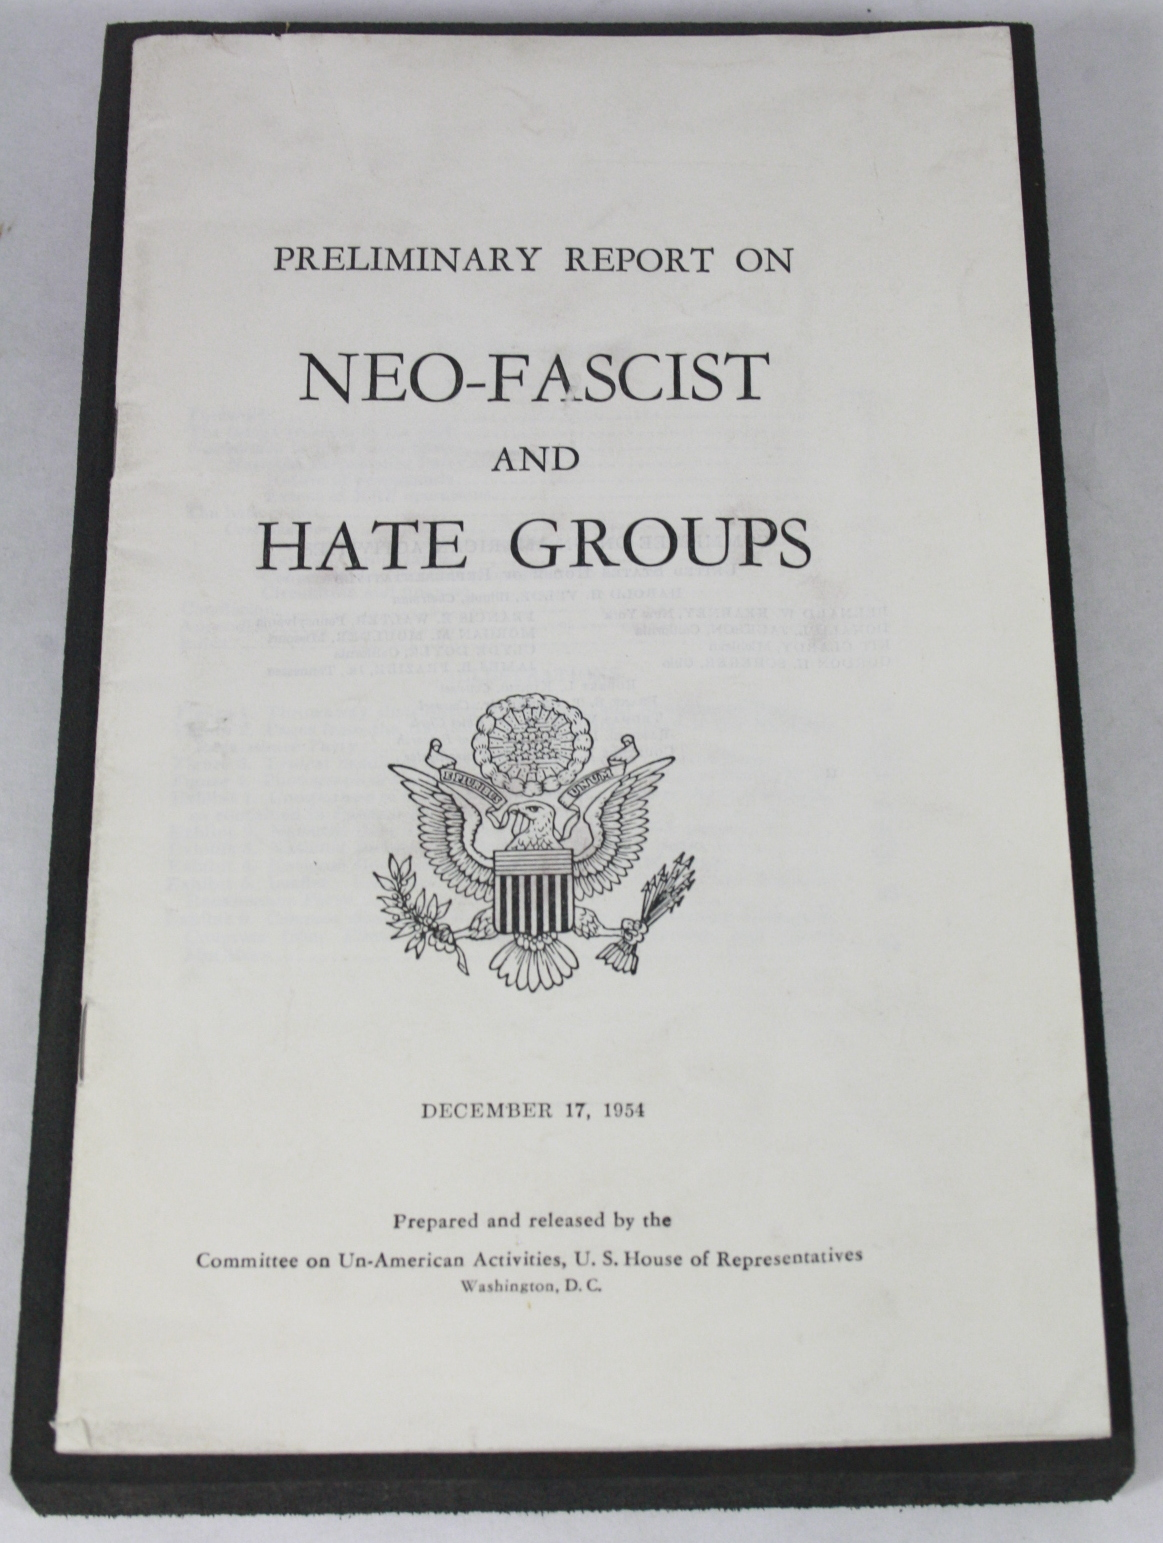 Preliminary Report on Neo-Fascist and Hate Groups, December 17, 1954 BWB21524791